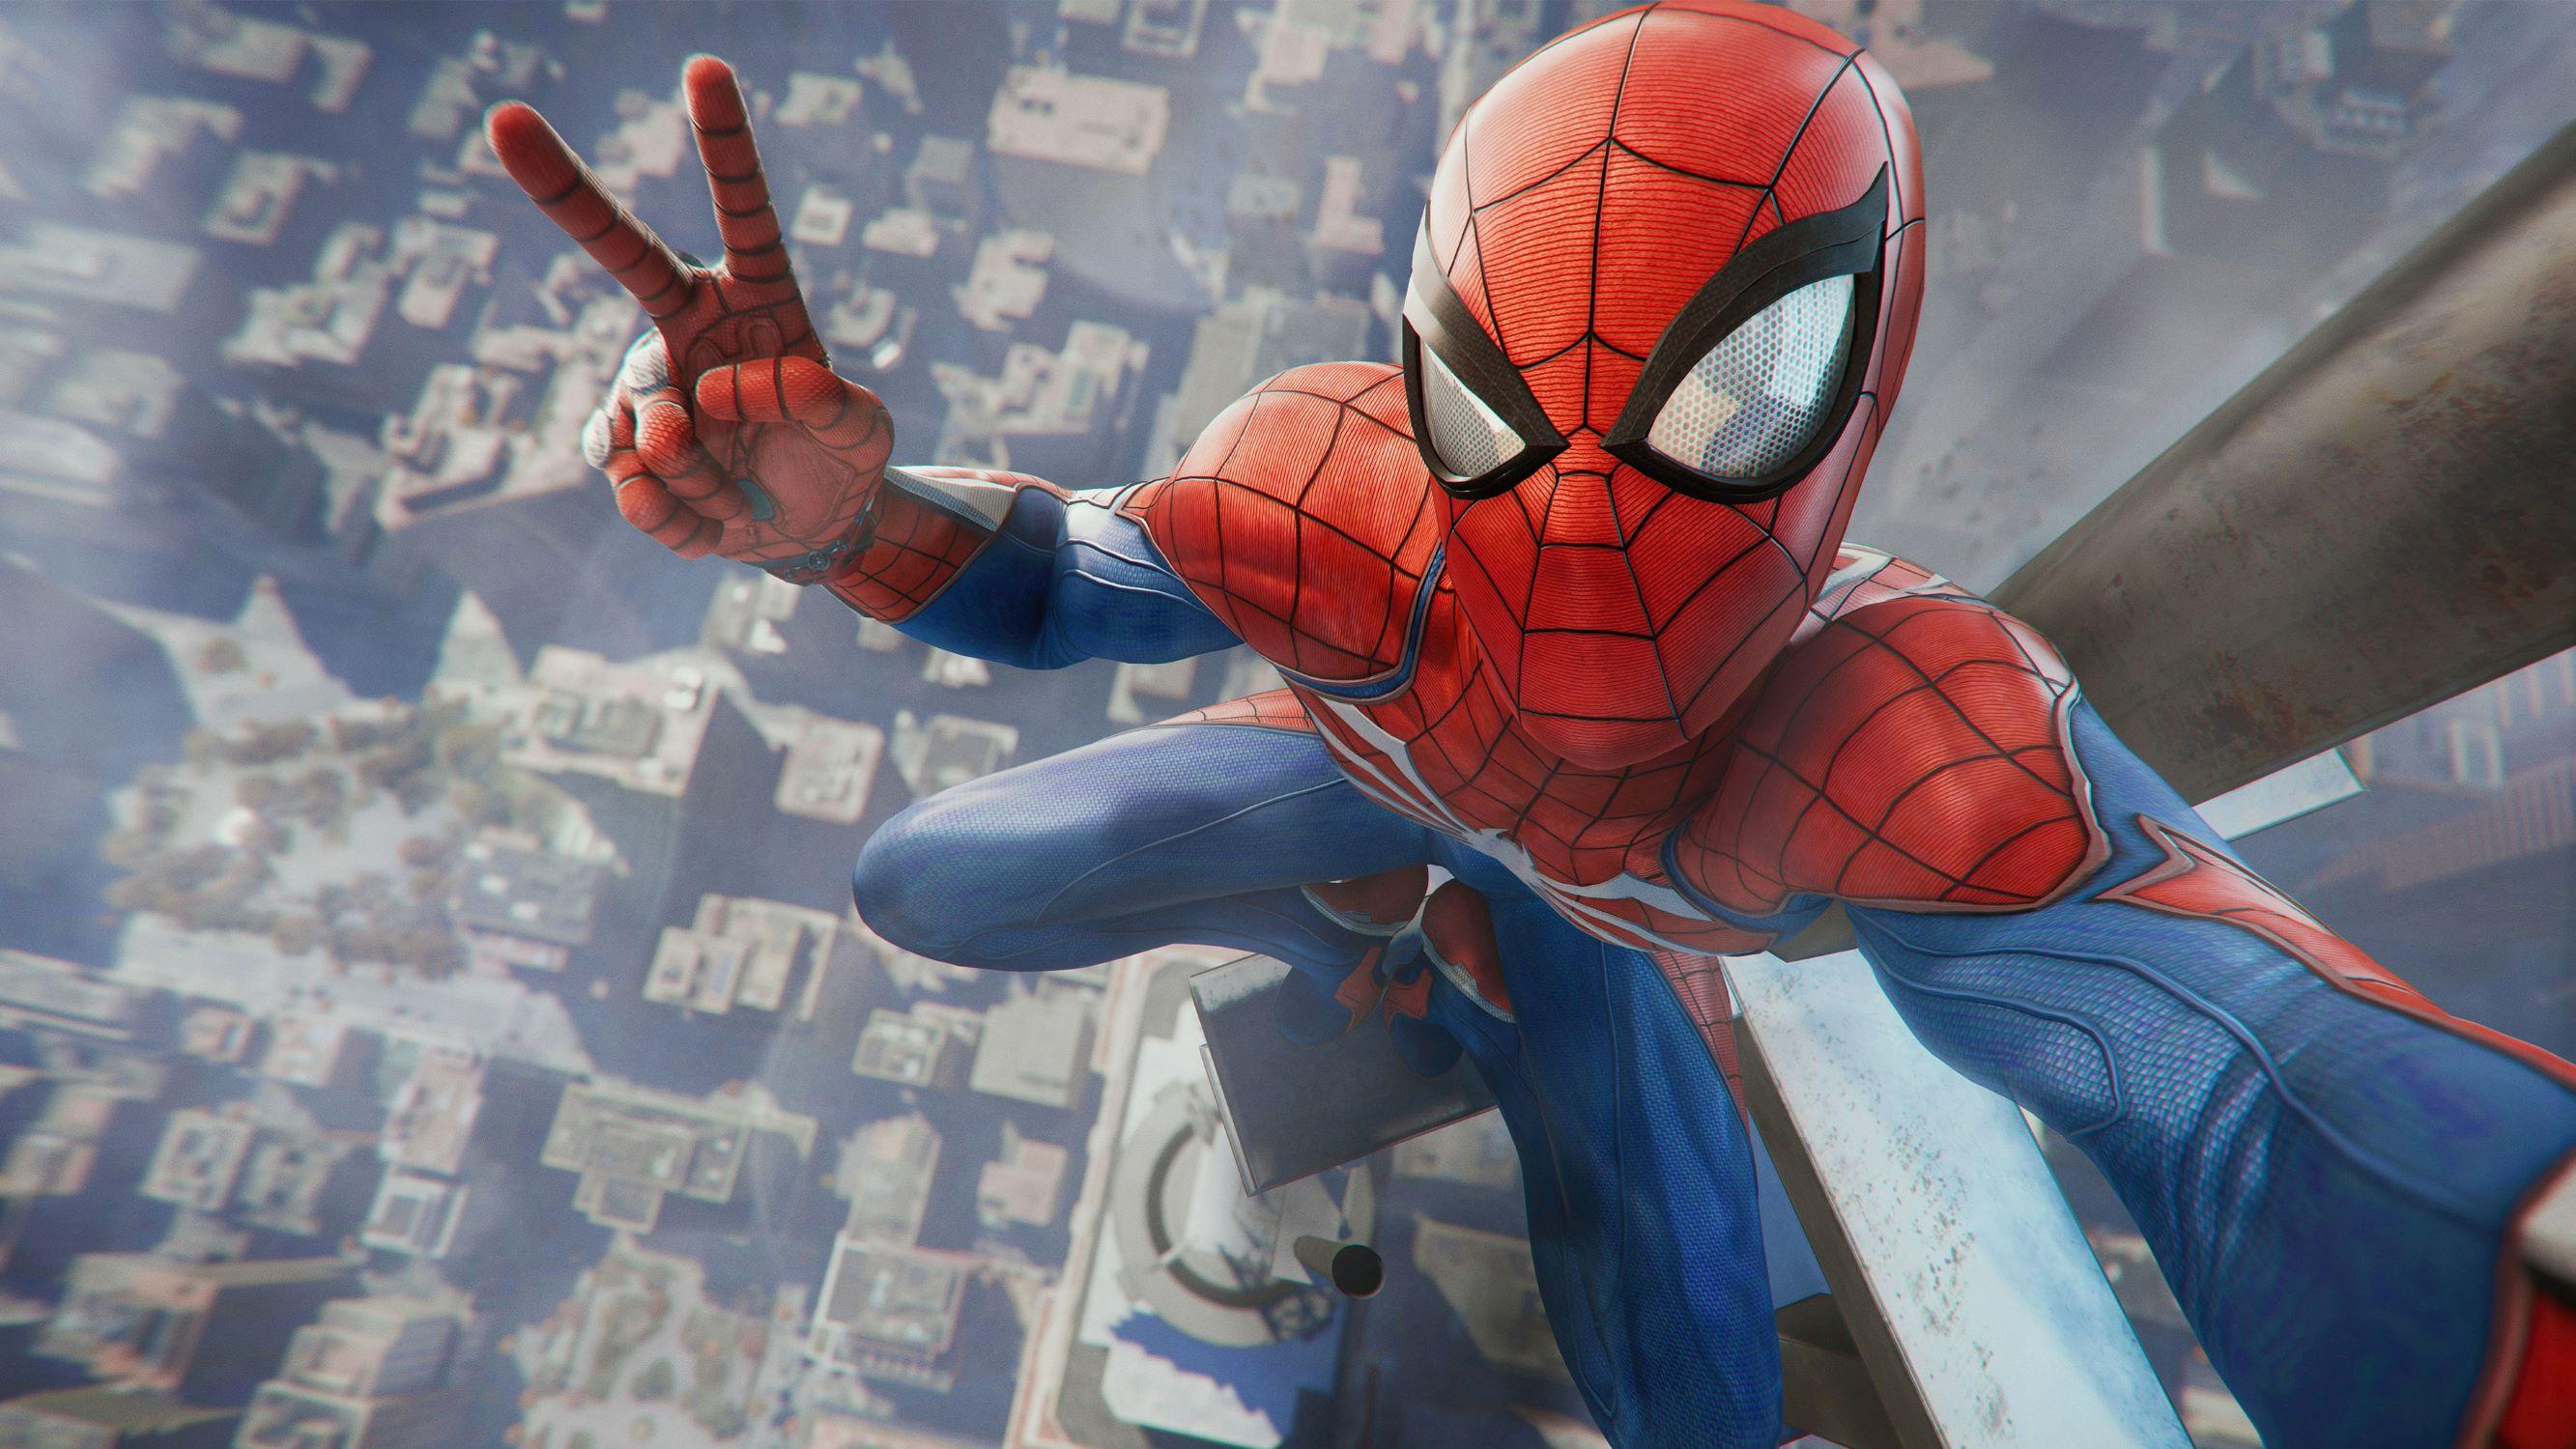 Marvel's Avengers faces backlash over Spider-Man PlayStation exclusive